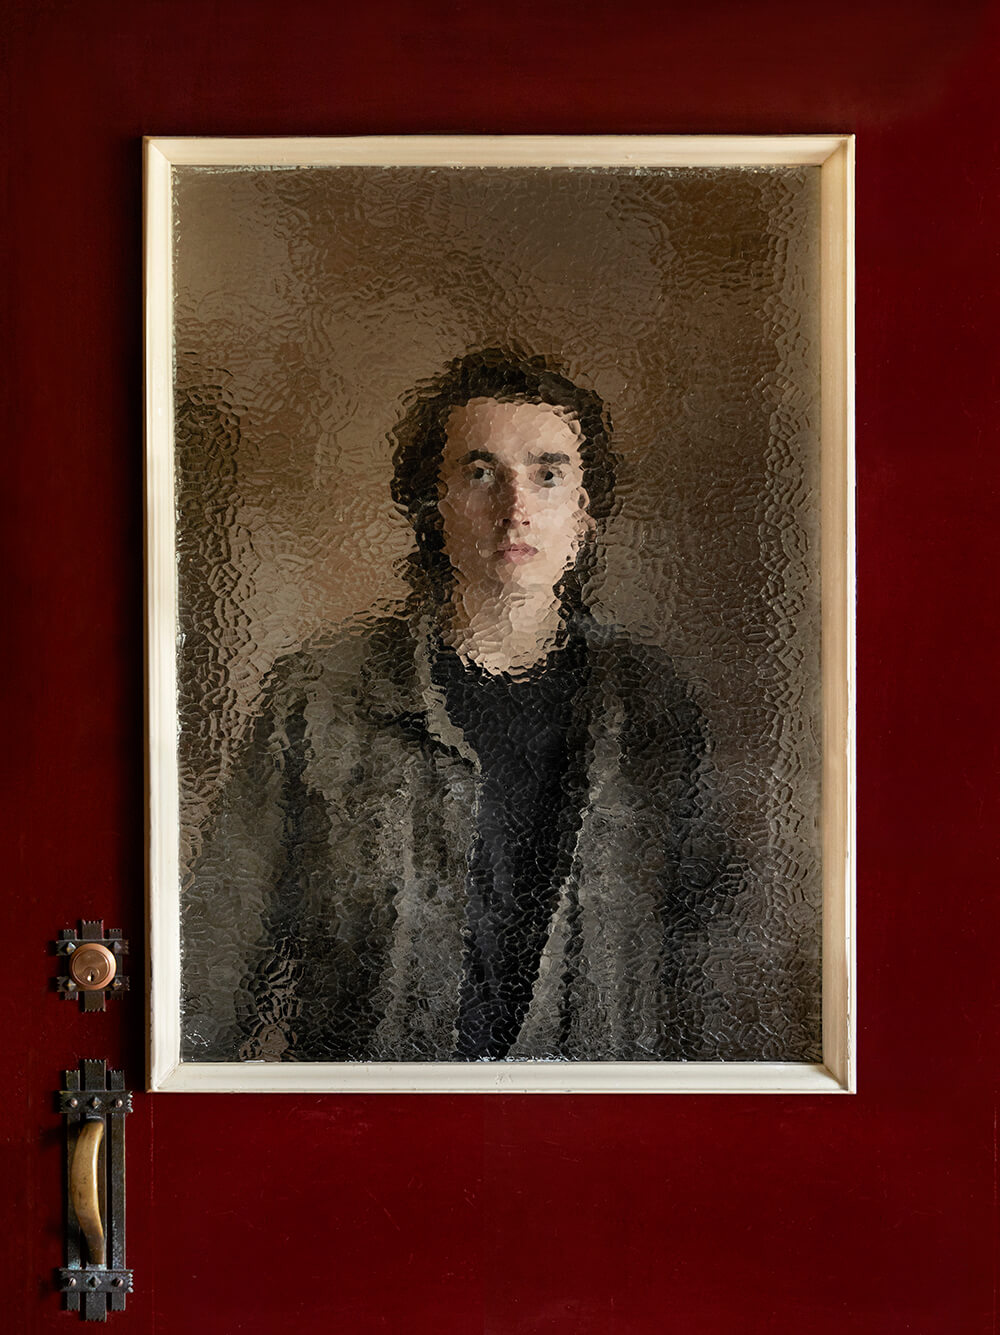 Portrait image of person behind door